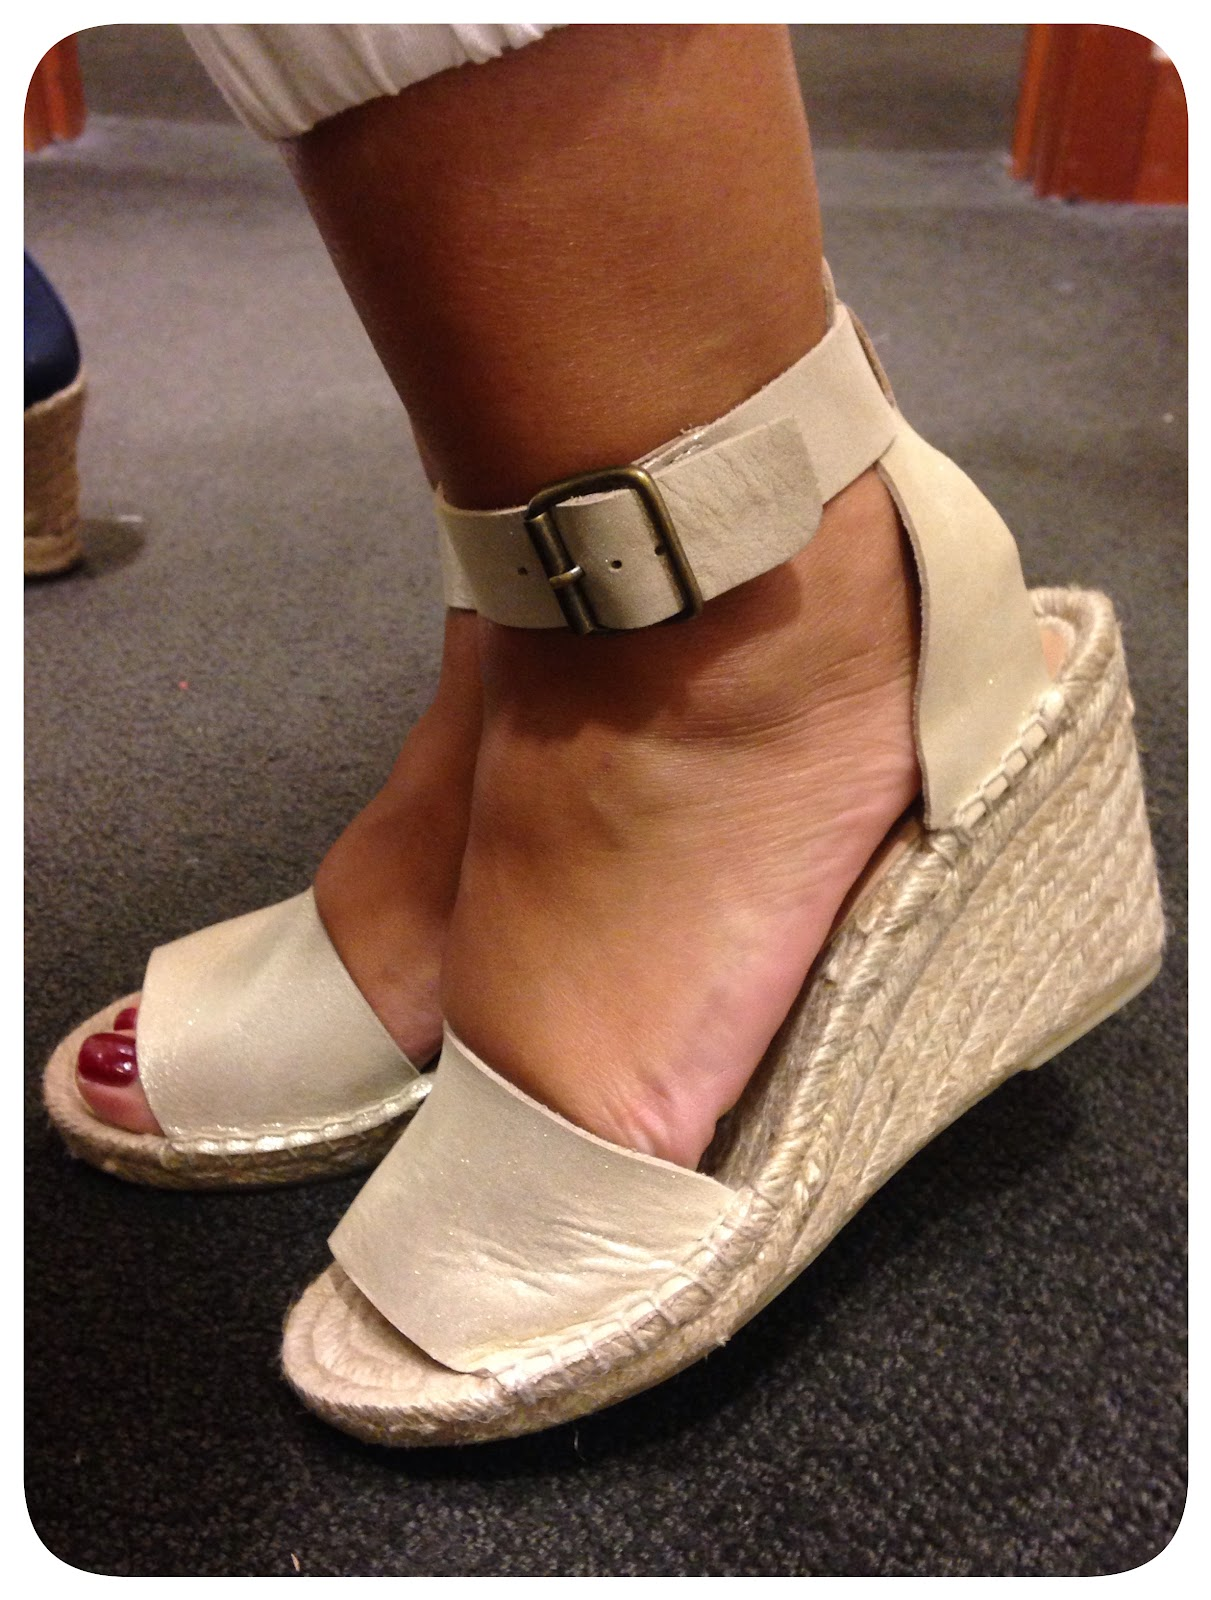 48efa4a346d7 The heel height didn t bother me at all. I m used to the height of the Seville  Espadrille and these were no different. It also helps that this is a wedge